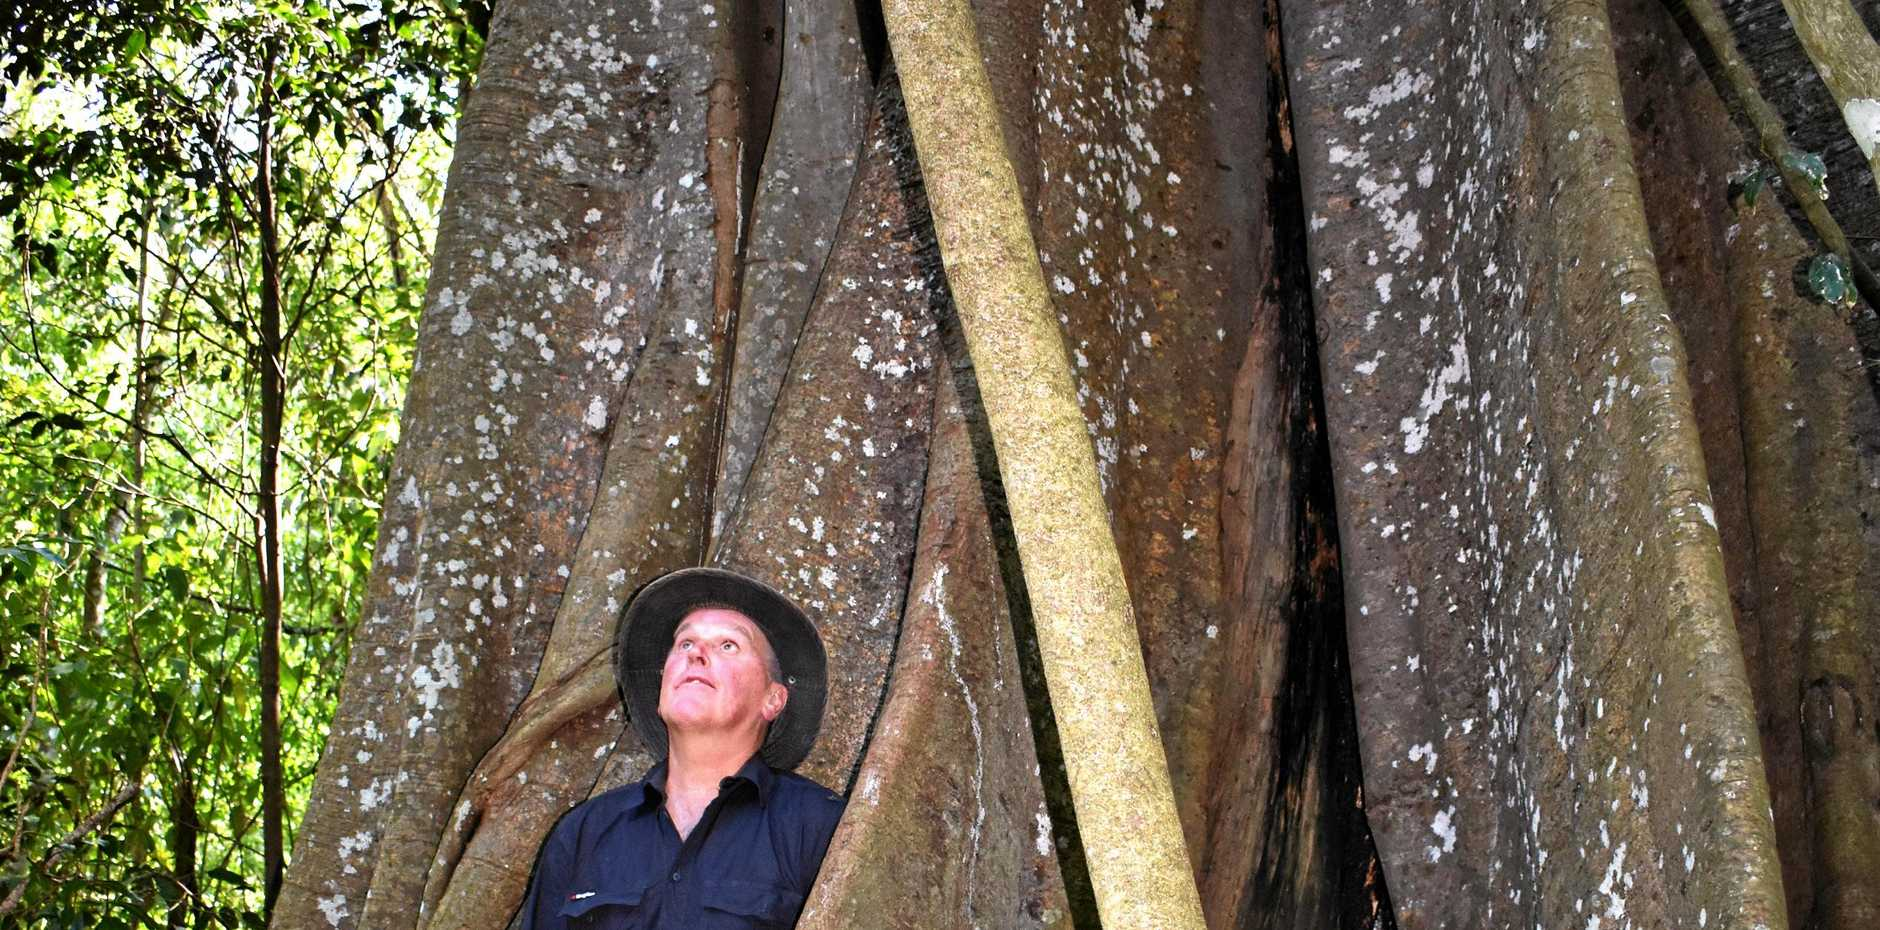 Rob Drury from Kyogle Llandcare next to the huge strangler fig tree at Moore Park Nature Reserve on Findon Creek Rd, out of Wiangaree.